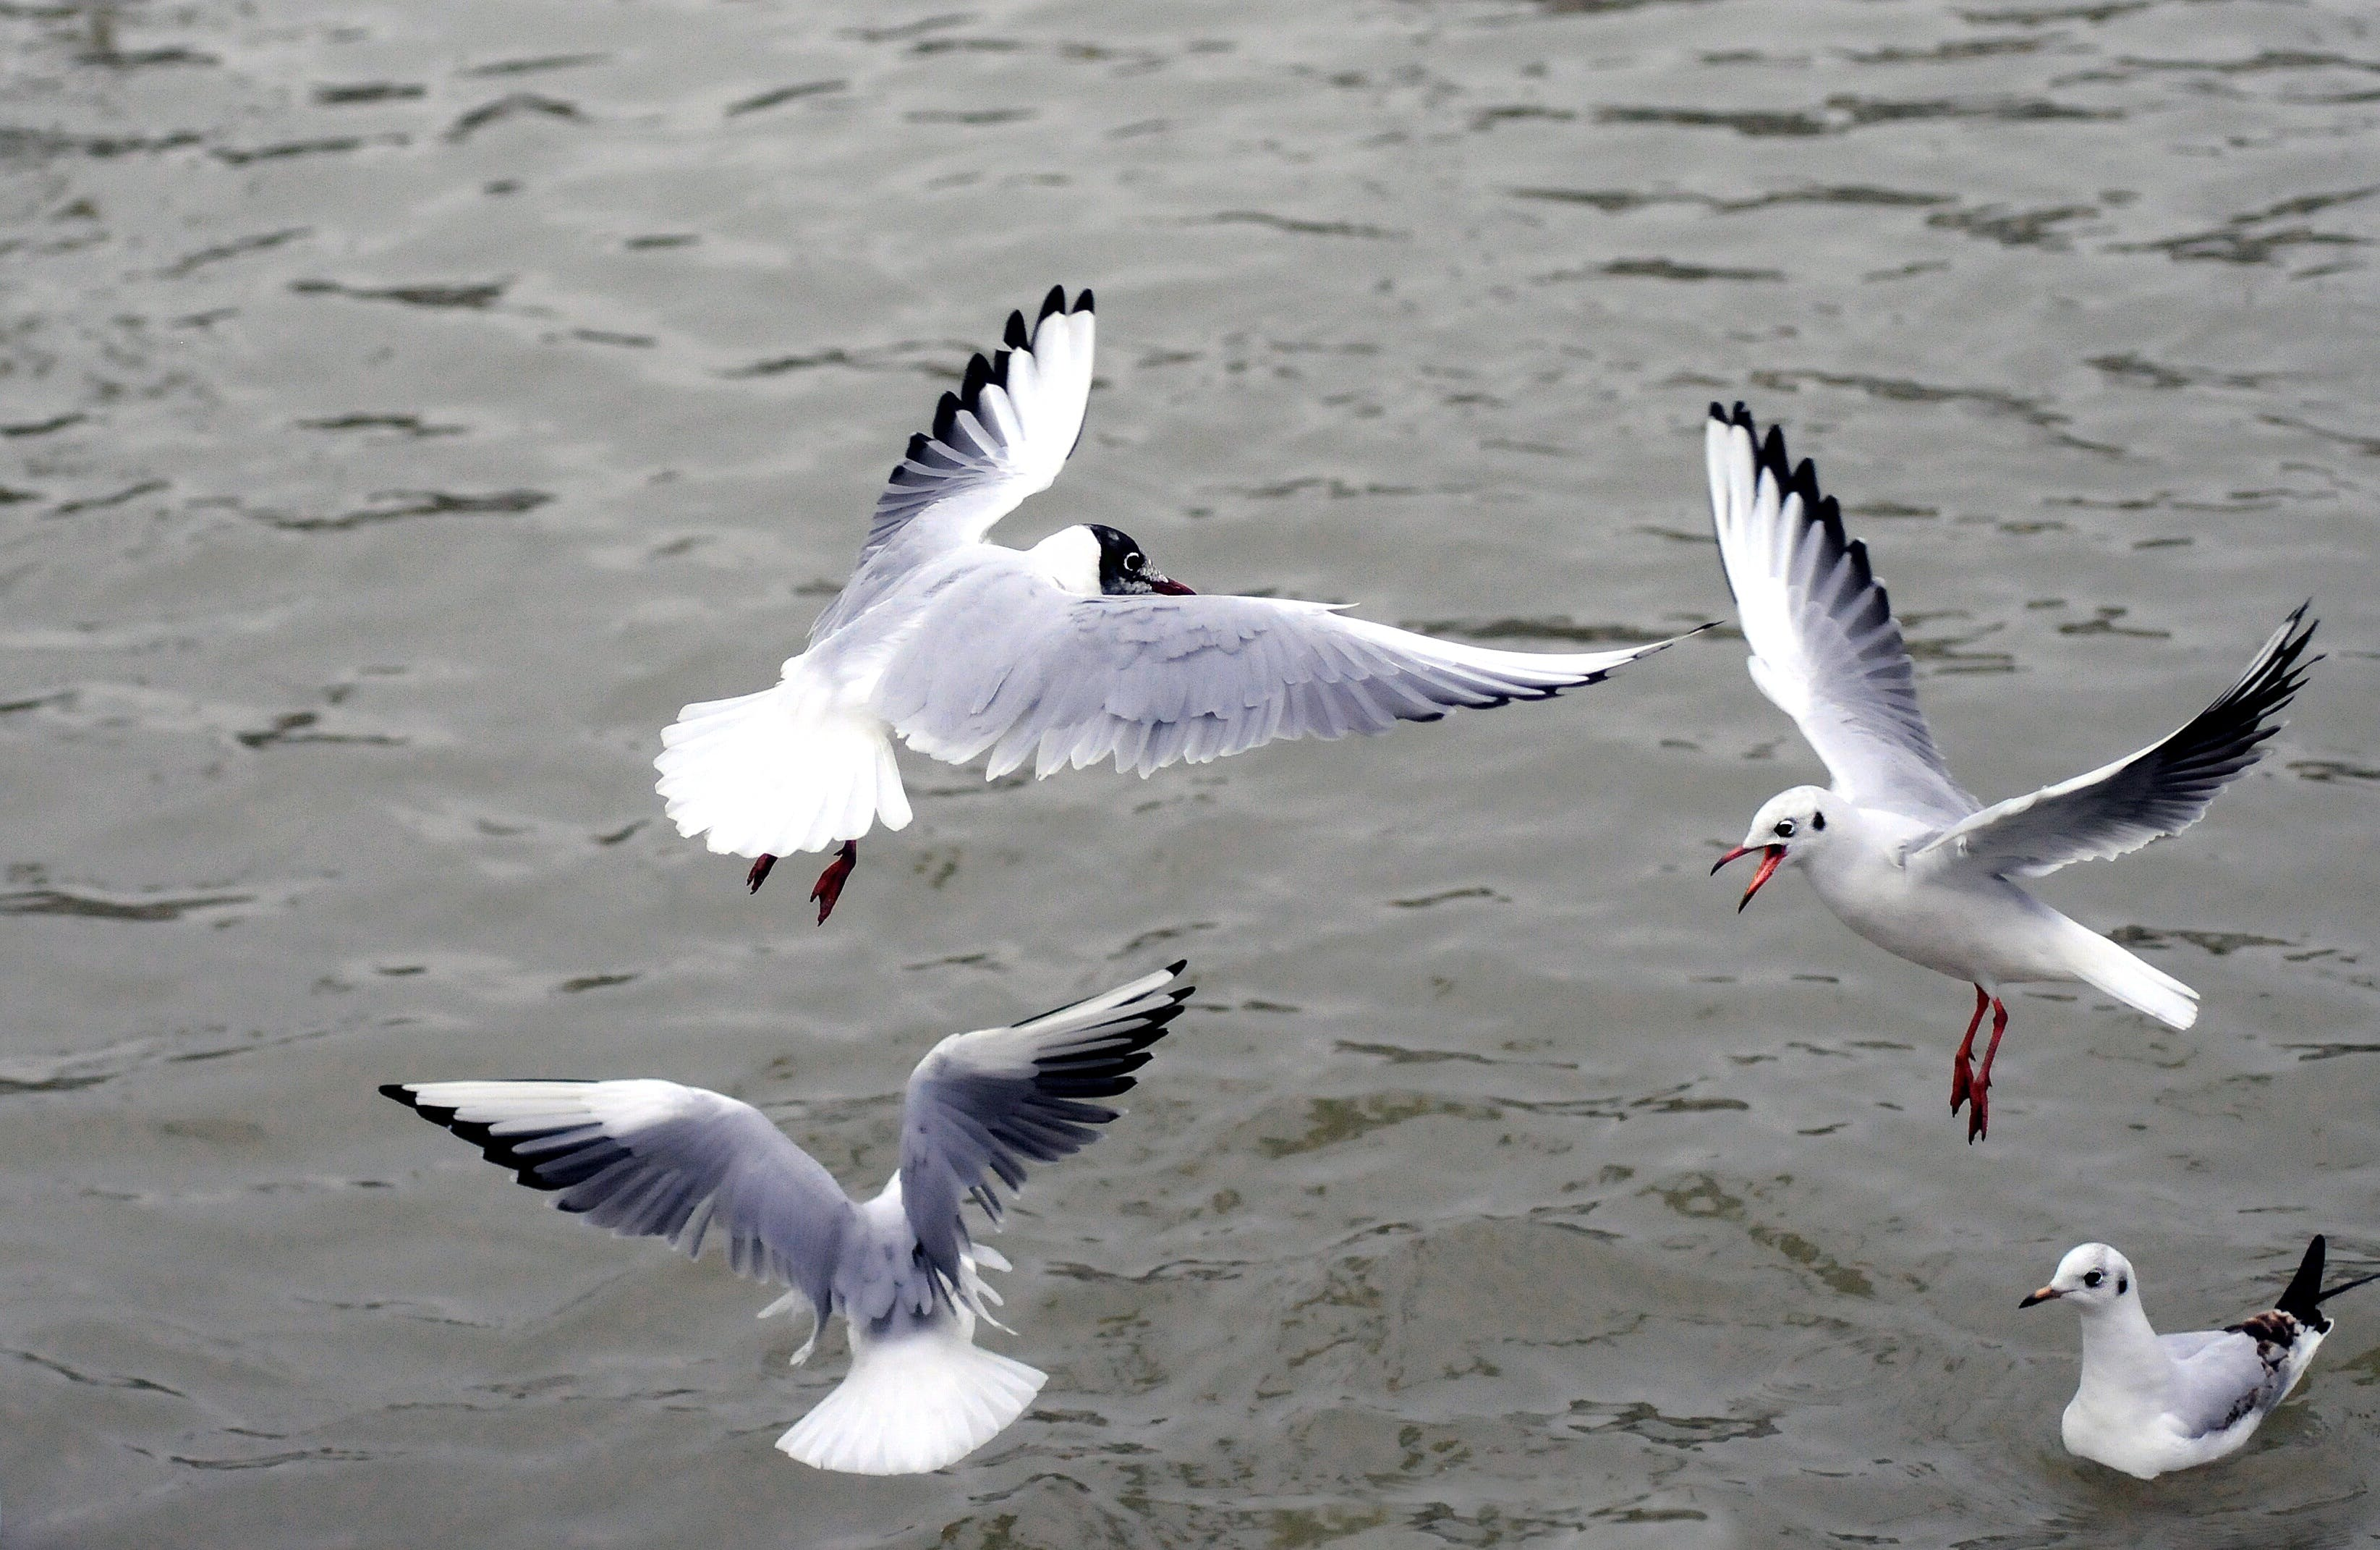 Four White Birds Flying on Air